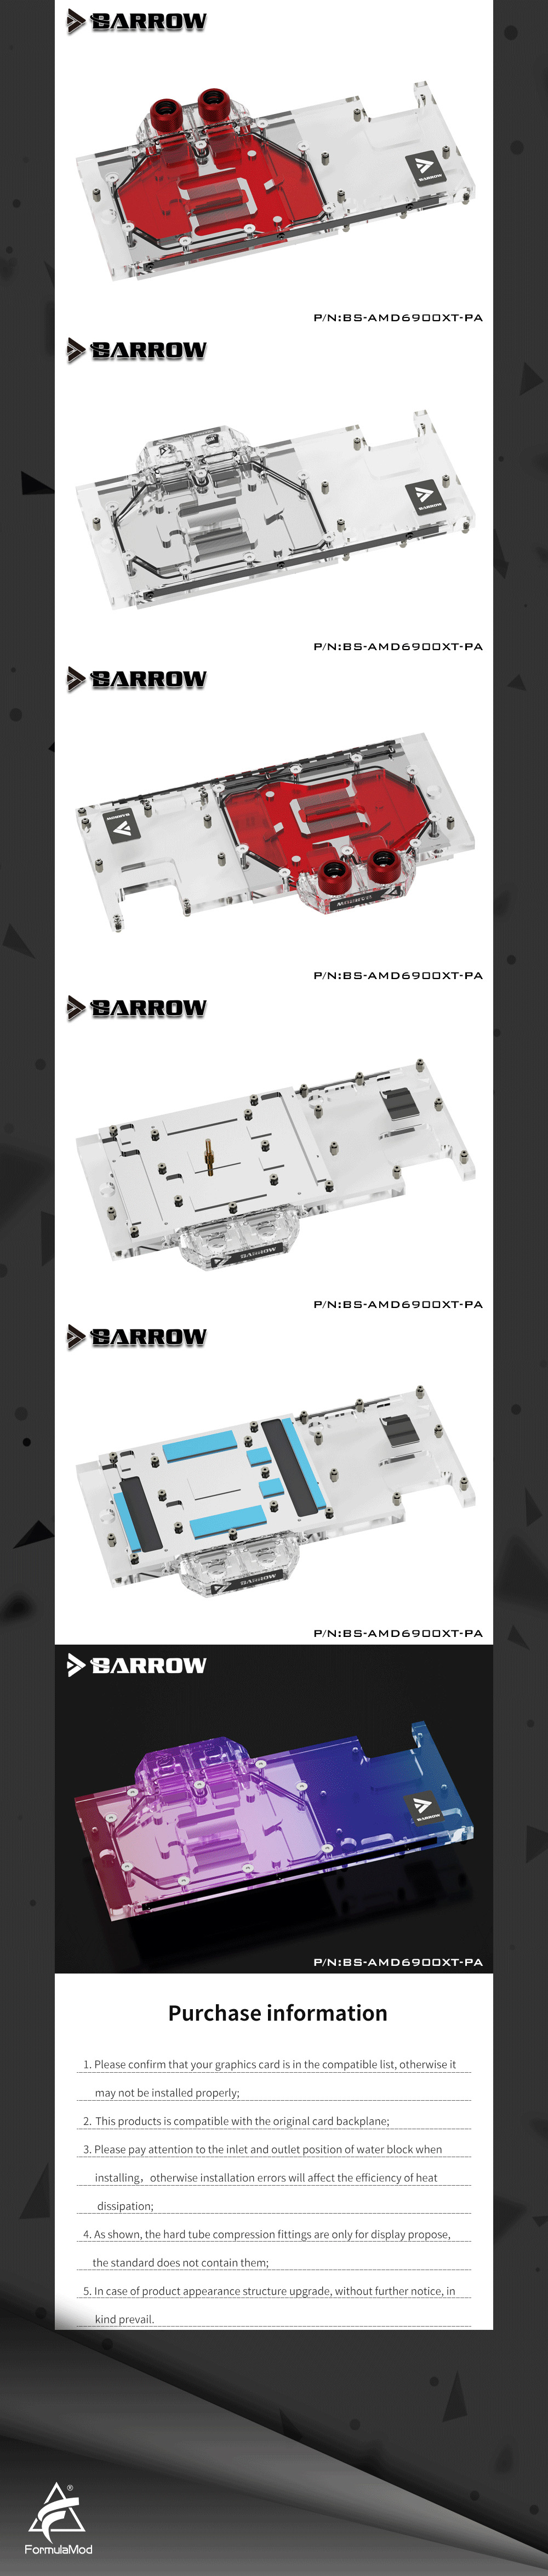 BARROW 6900 GPU Water Cooling Block, Full coverage For AMD Founder Edition MSI Sapphire RX 6900 6800 XT, BS-AMD6900XT-PA